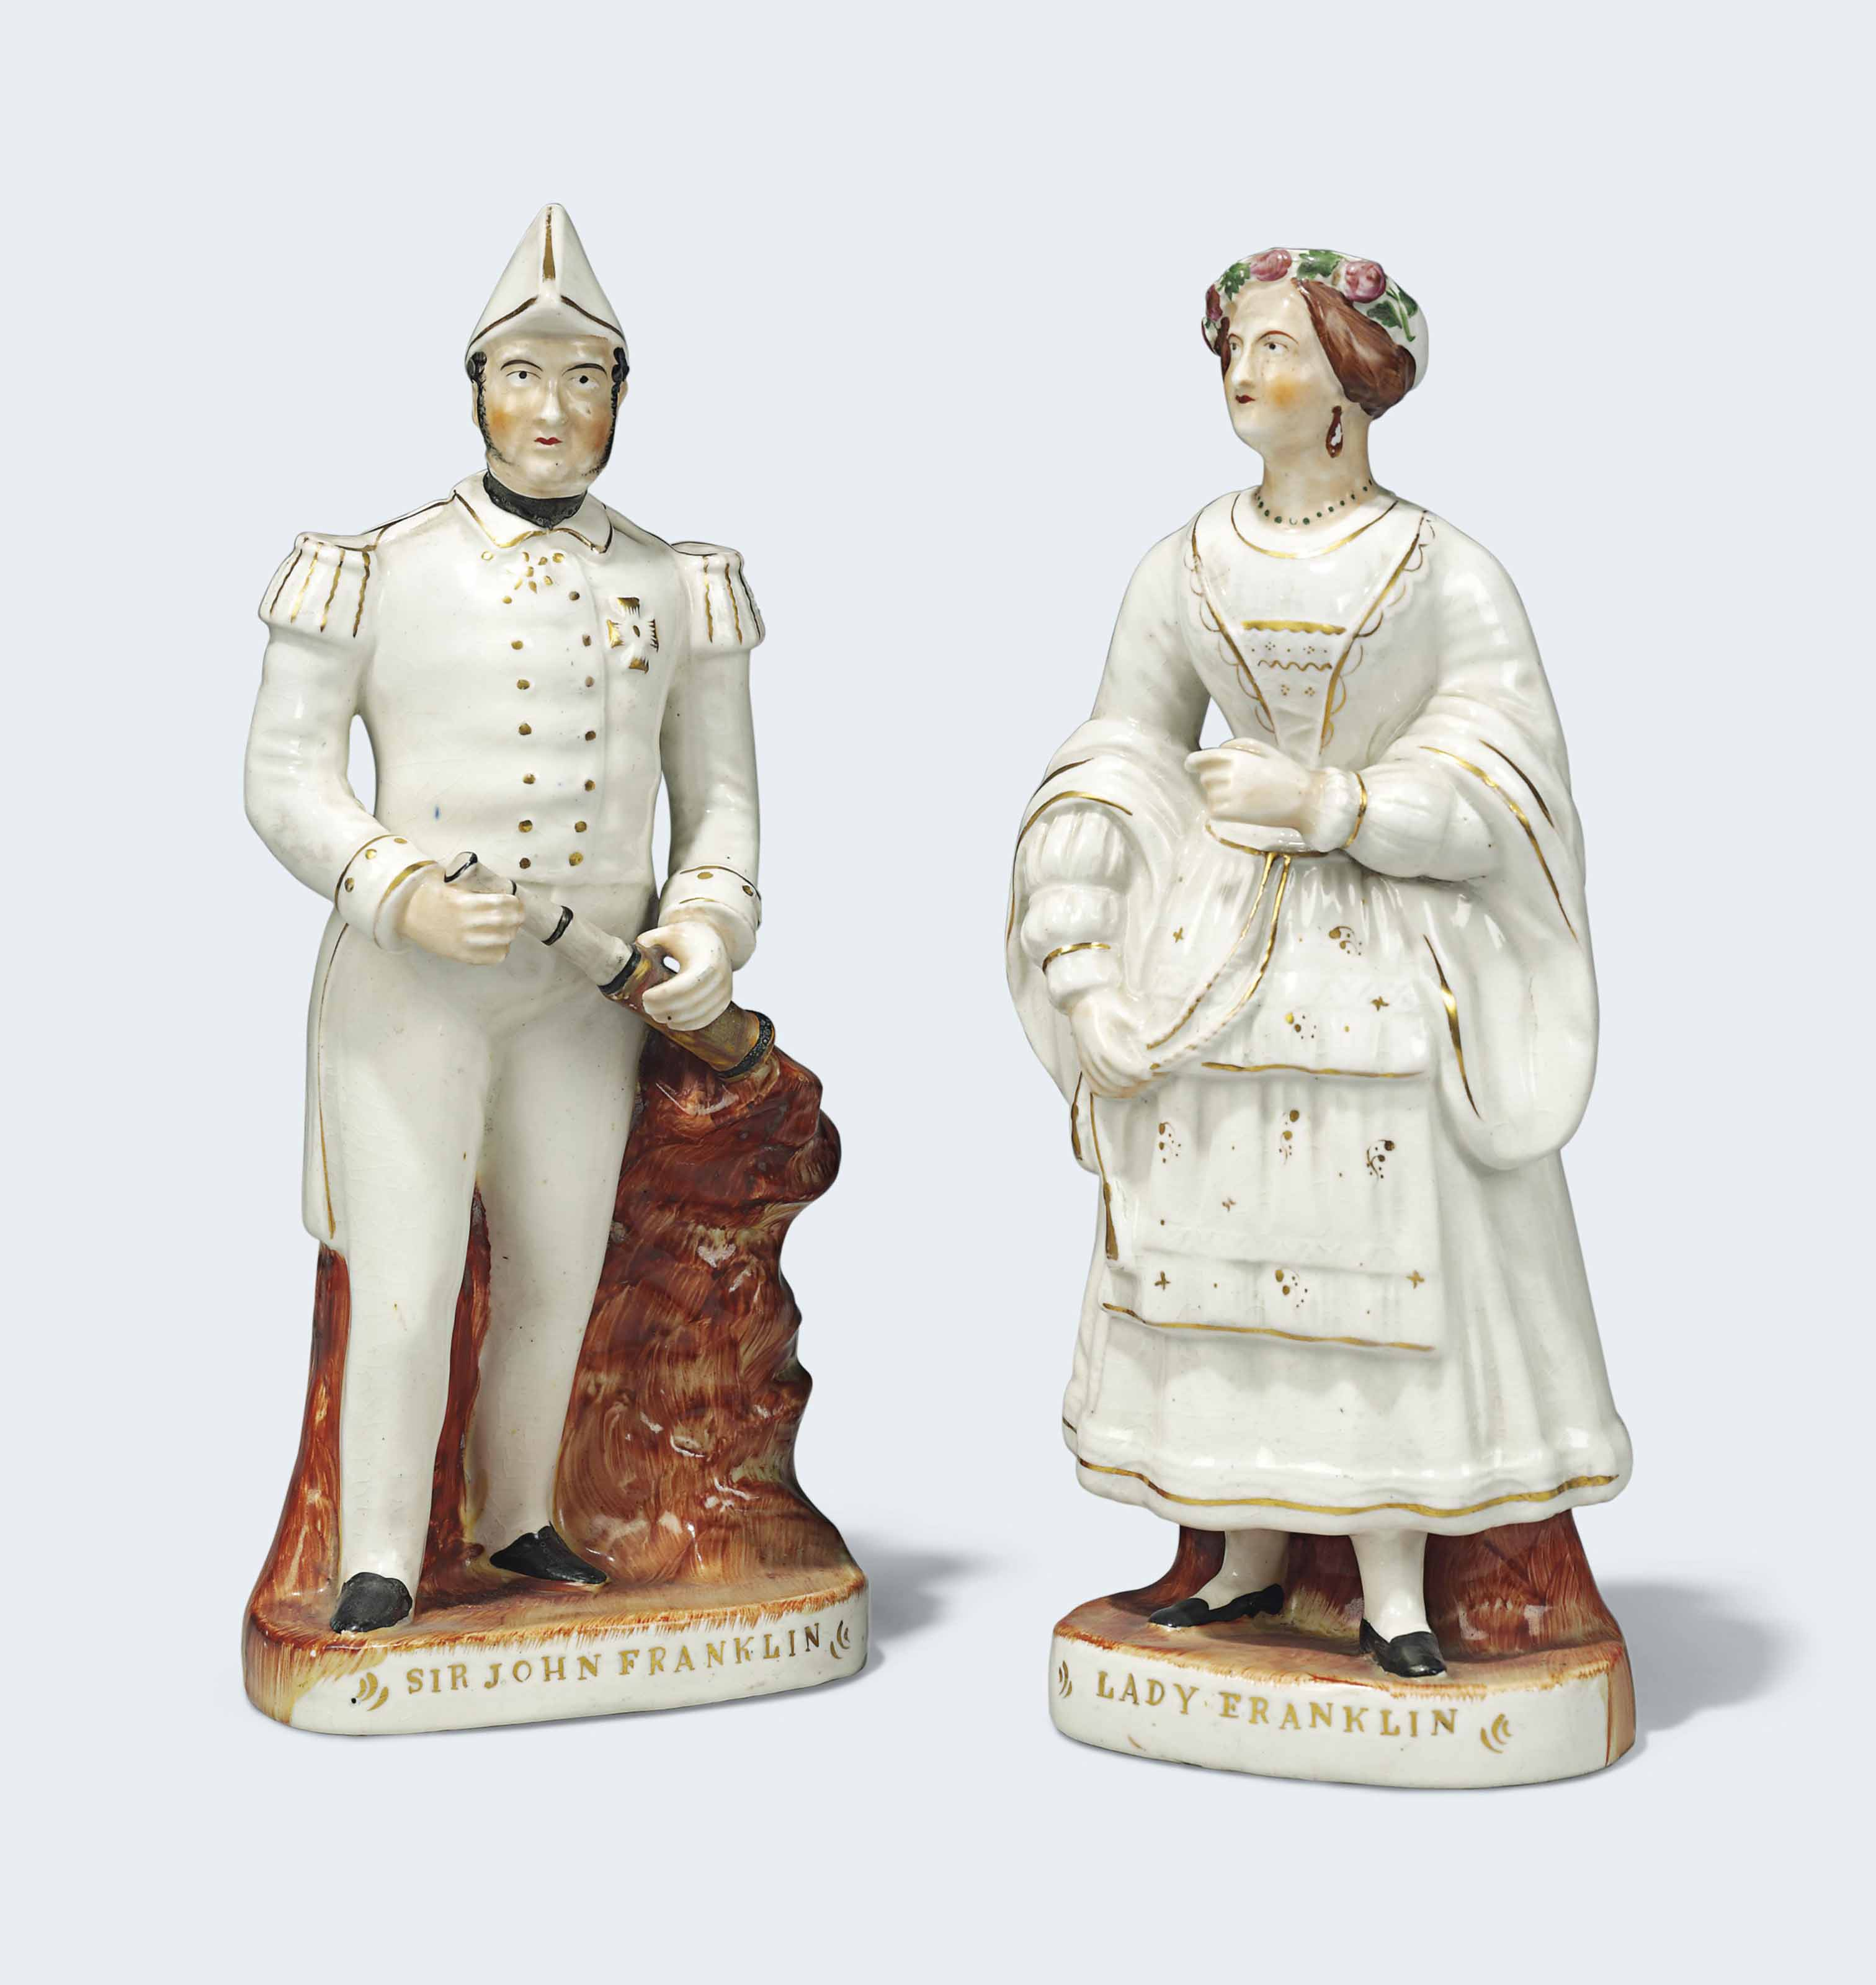 A PAIR OF STAFFORDSHIRE FIGURES OF SIR JOHN FRANKLIN AND LADY FRANKLIN, 19TH CENTURY